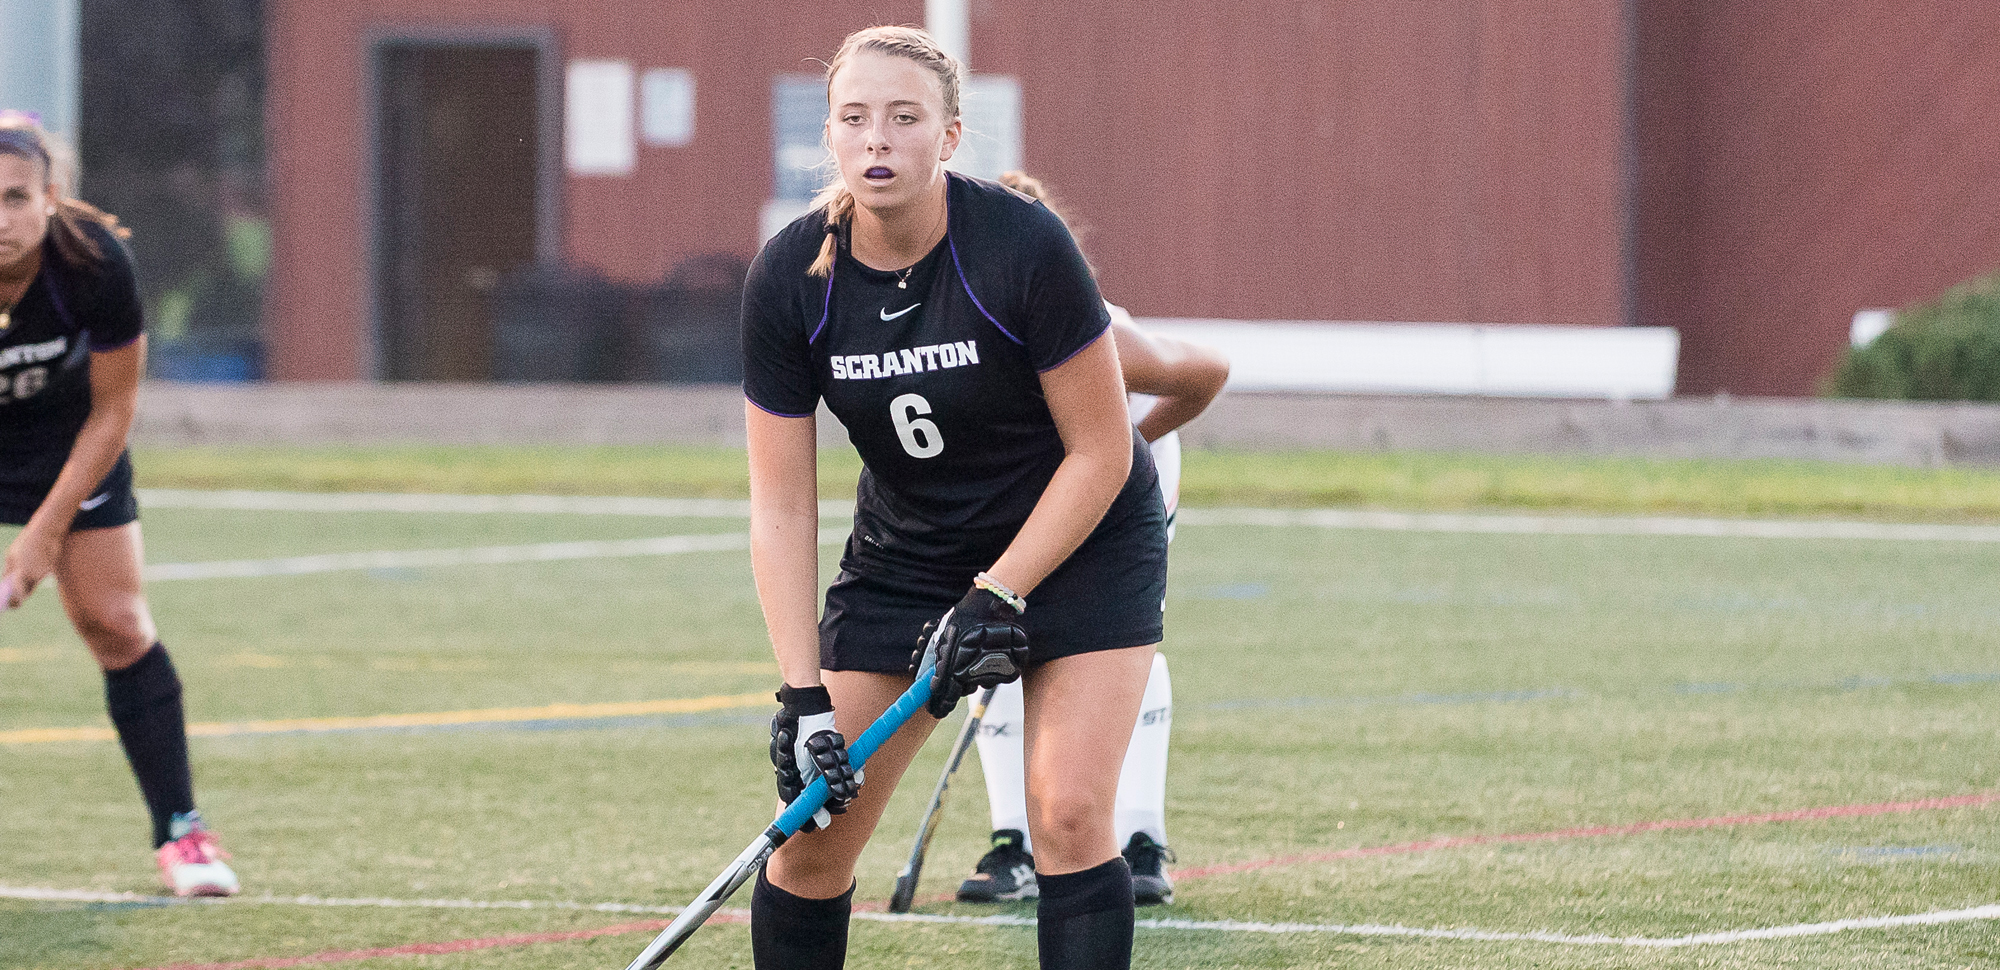 Senior Ryan Jones scored her second goal of the season in the first half, as Scranton went on to take a 2-1 victory over Albright on Tuesday night to remain unbeaten at 11-0.